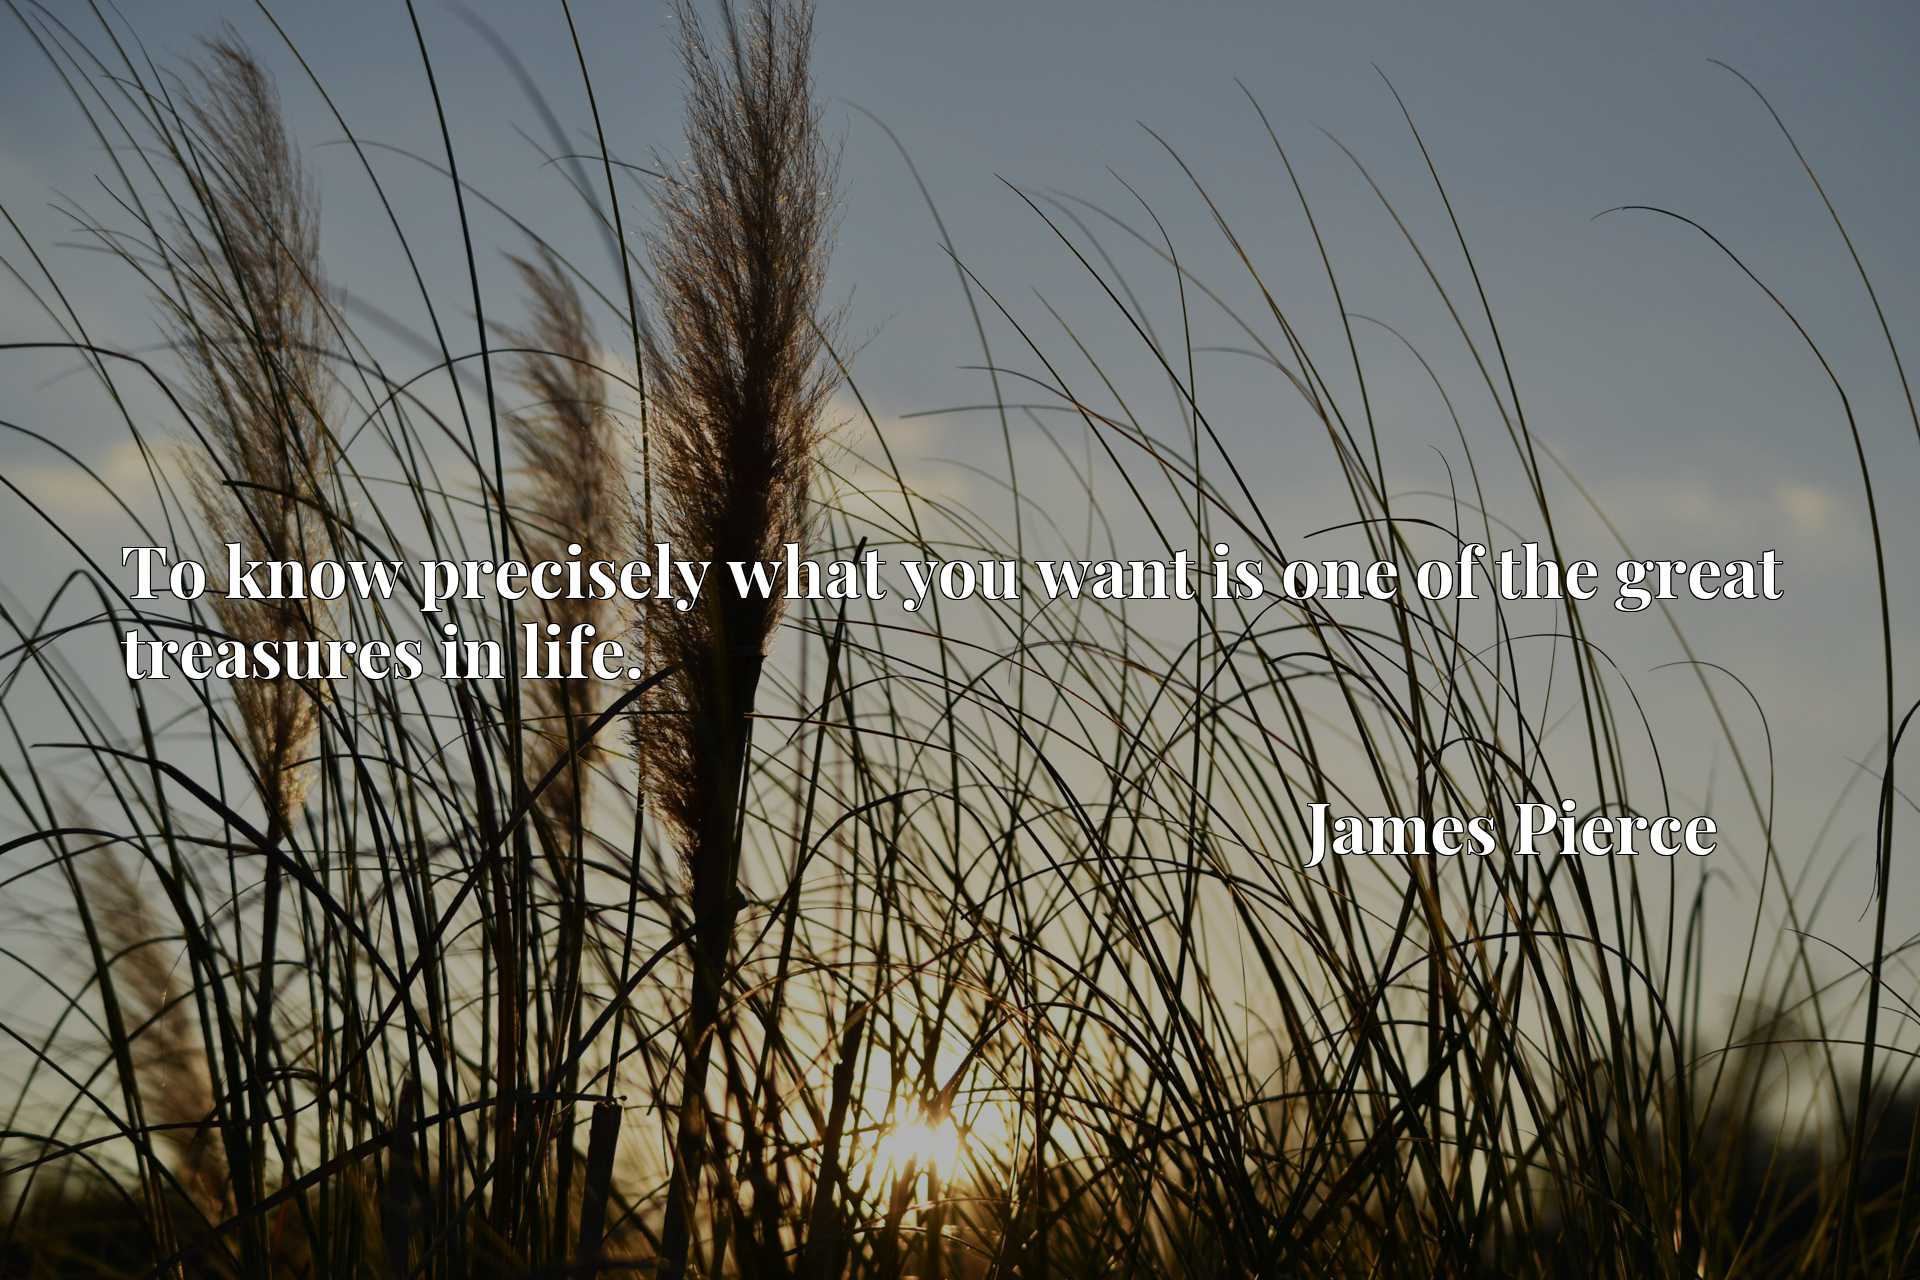 To know precisely what you want is one of the great treasures in life.